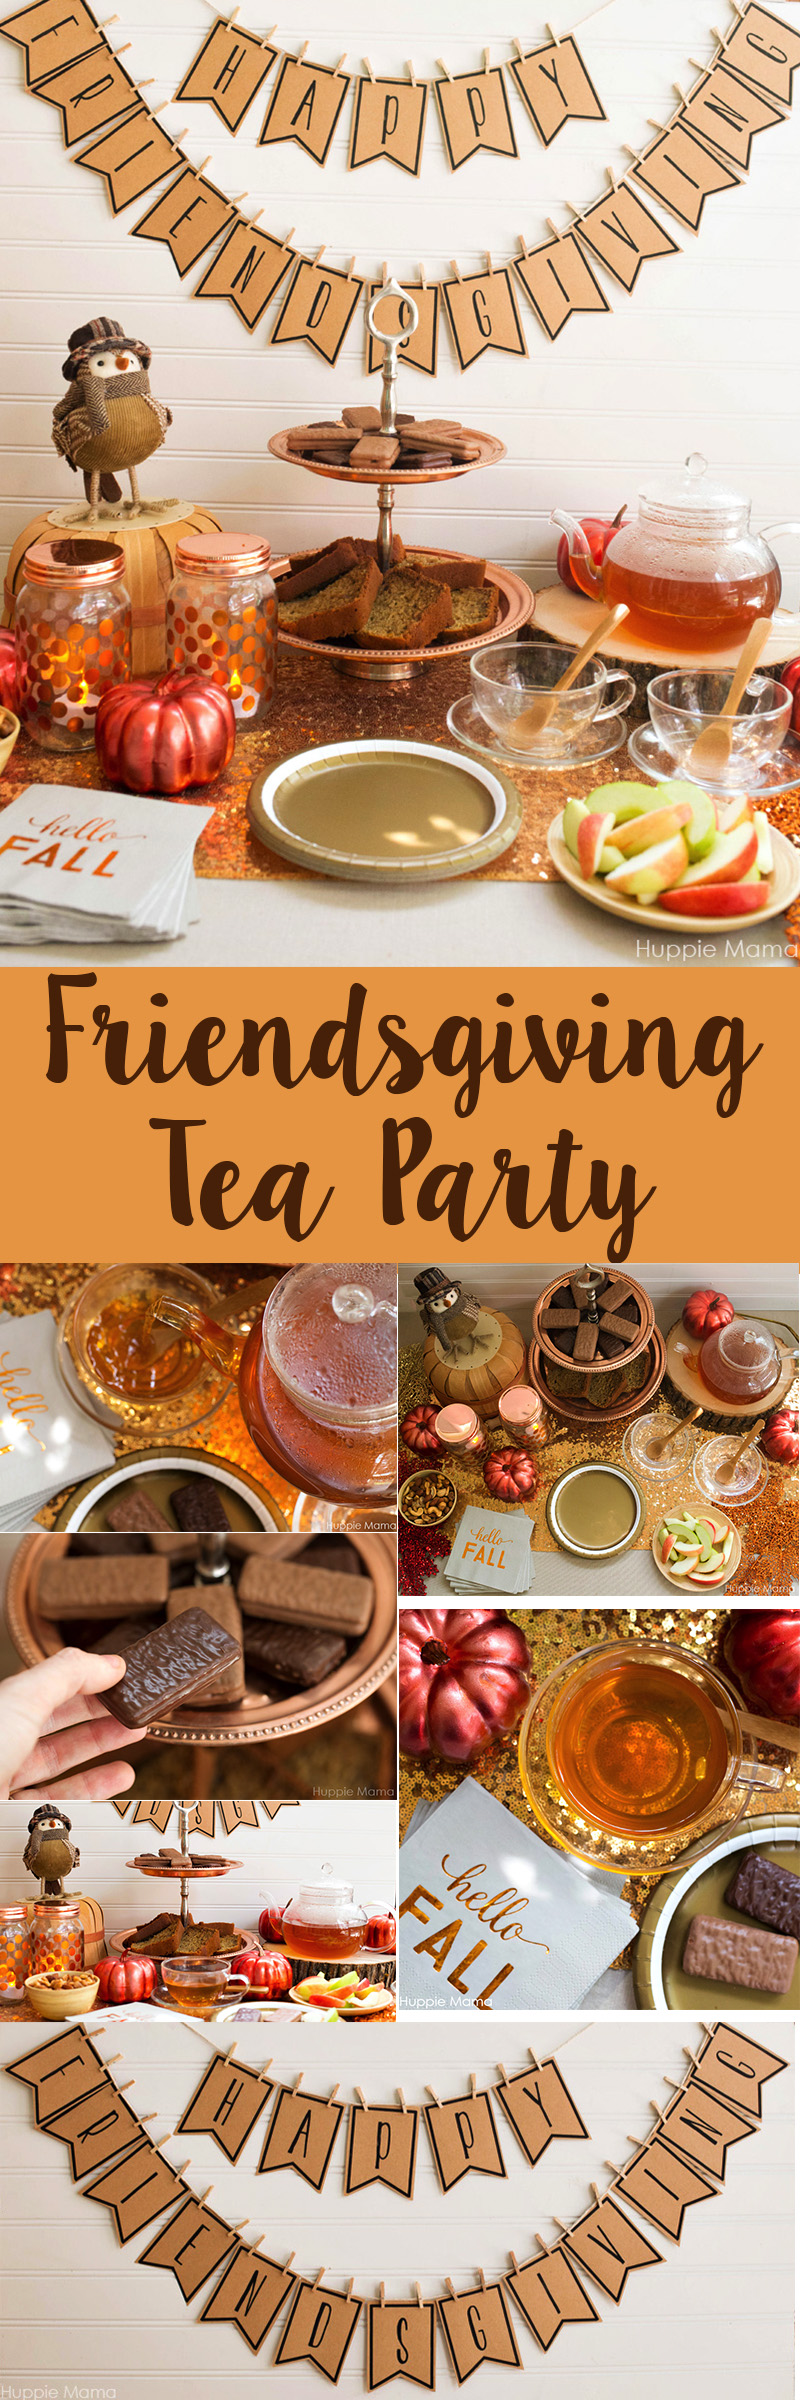 friendsgiving-tea-party